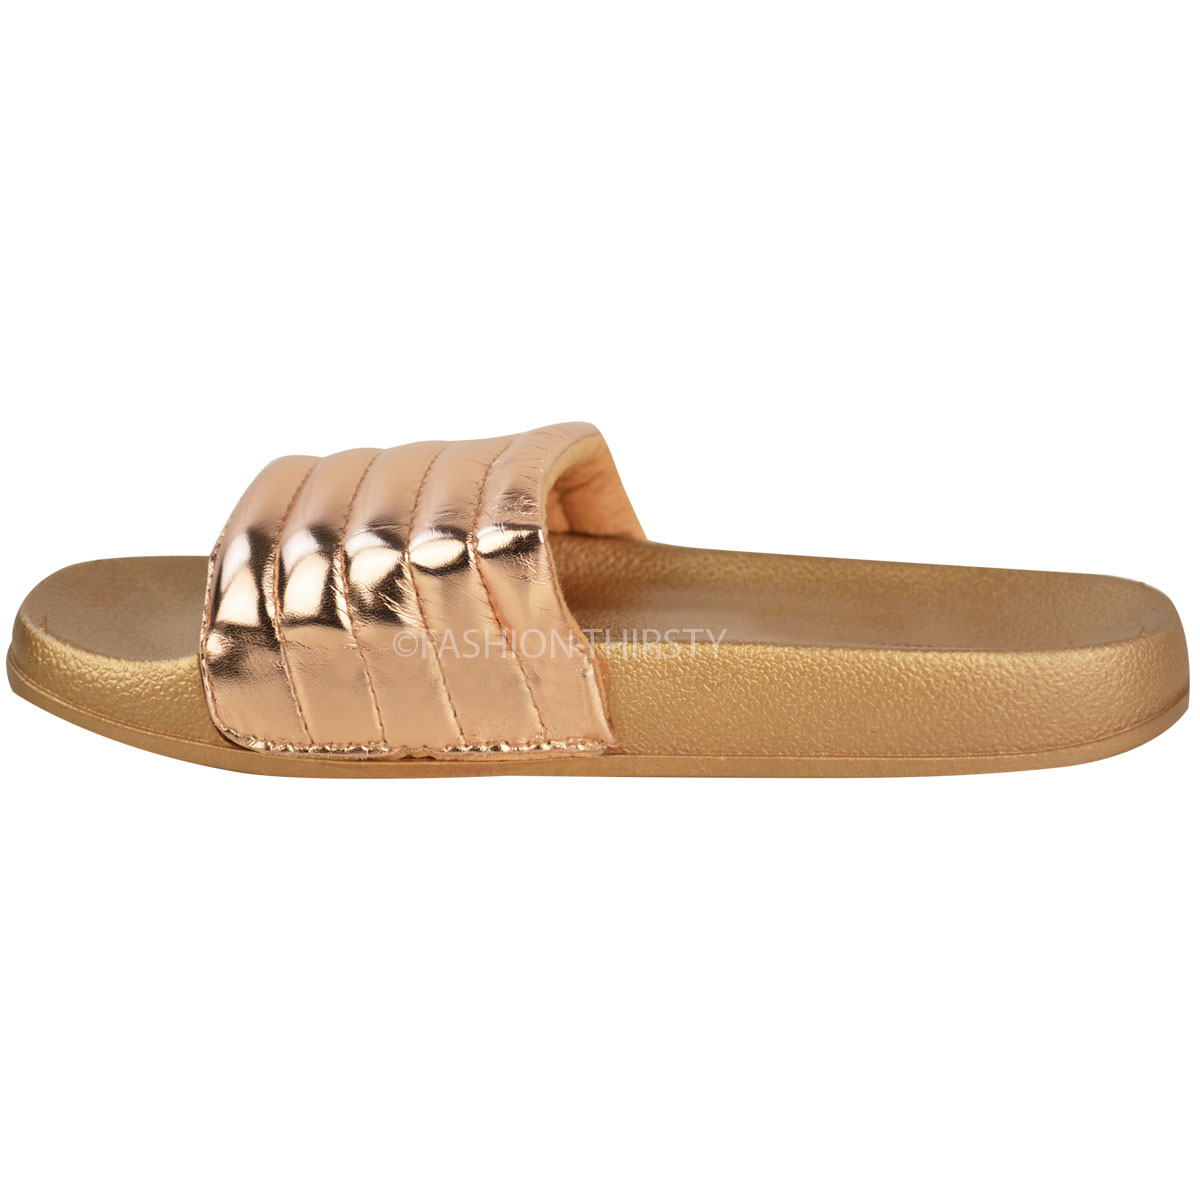 Rubber Sole Womens Flats Sale: Save Up to 50% Off! Shop funon.ml's huge selection of Rubber Sole Womens Flats - Over styles available. FREE Shipping & Exchanges, and a .